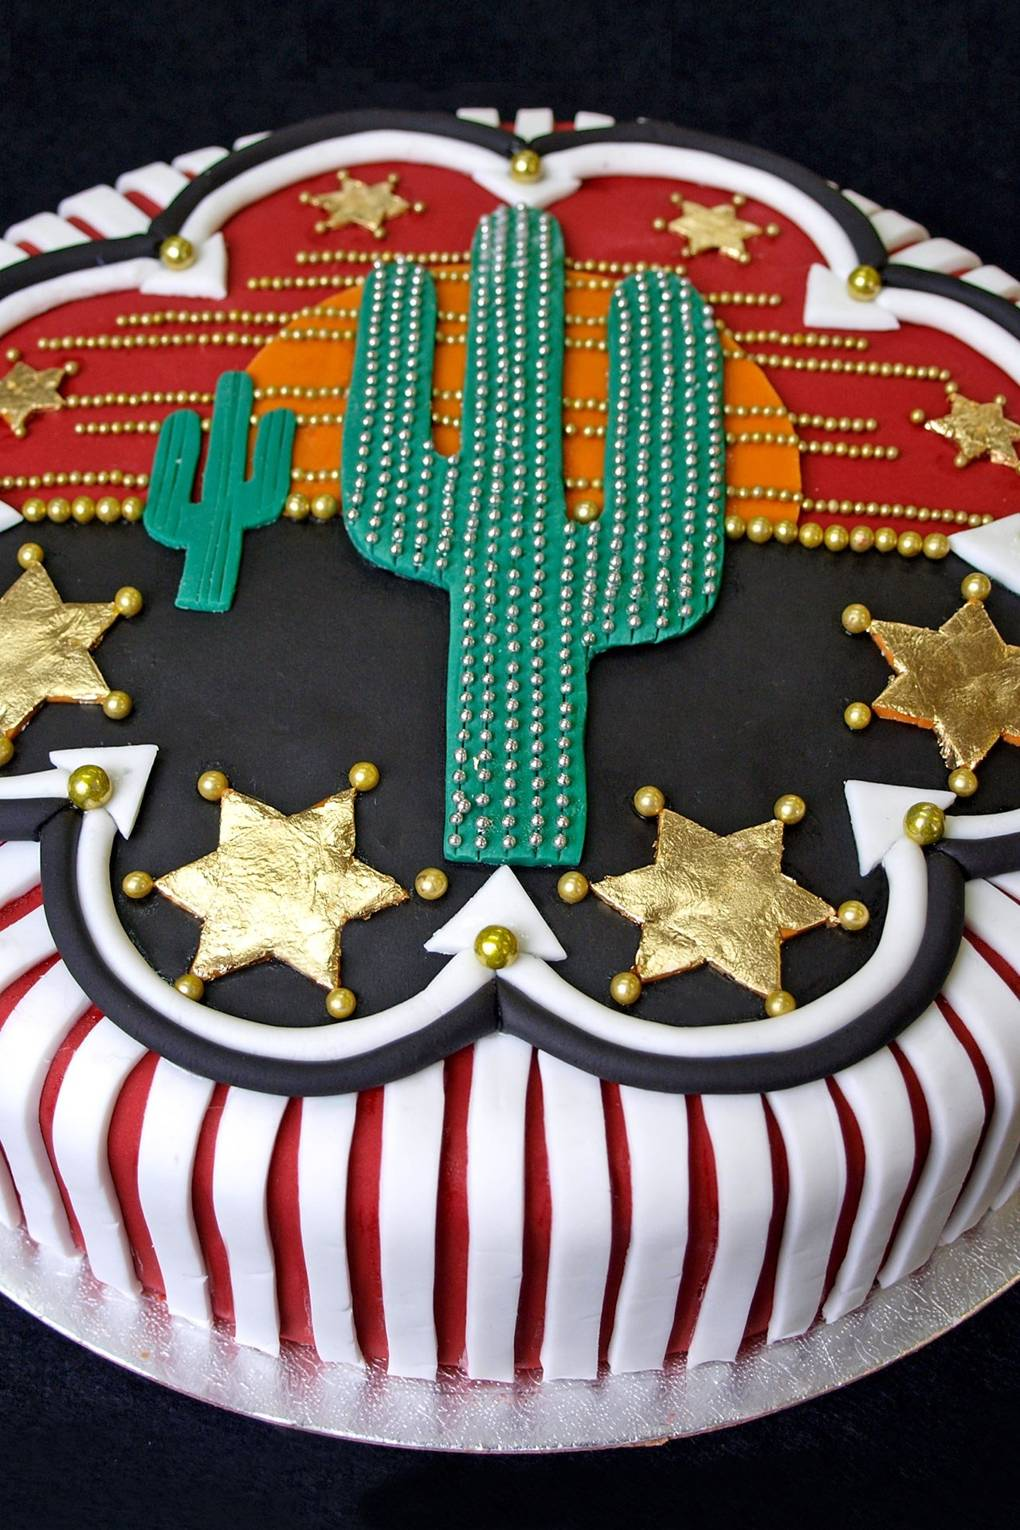 Phenomenal Country Western Cake Cake Decorating Idea House Garden Funny Birthday Cards Online Barepcheapnameinfo